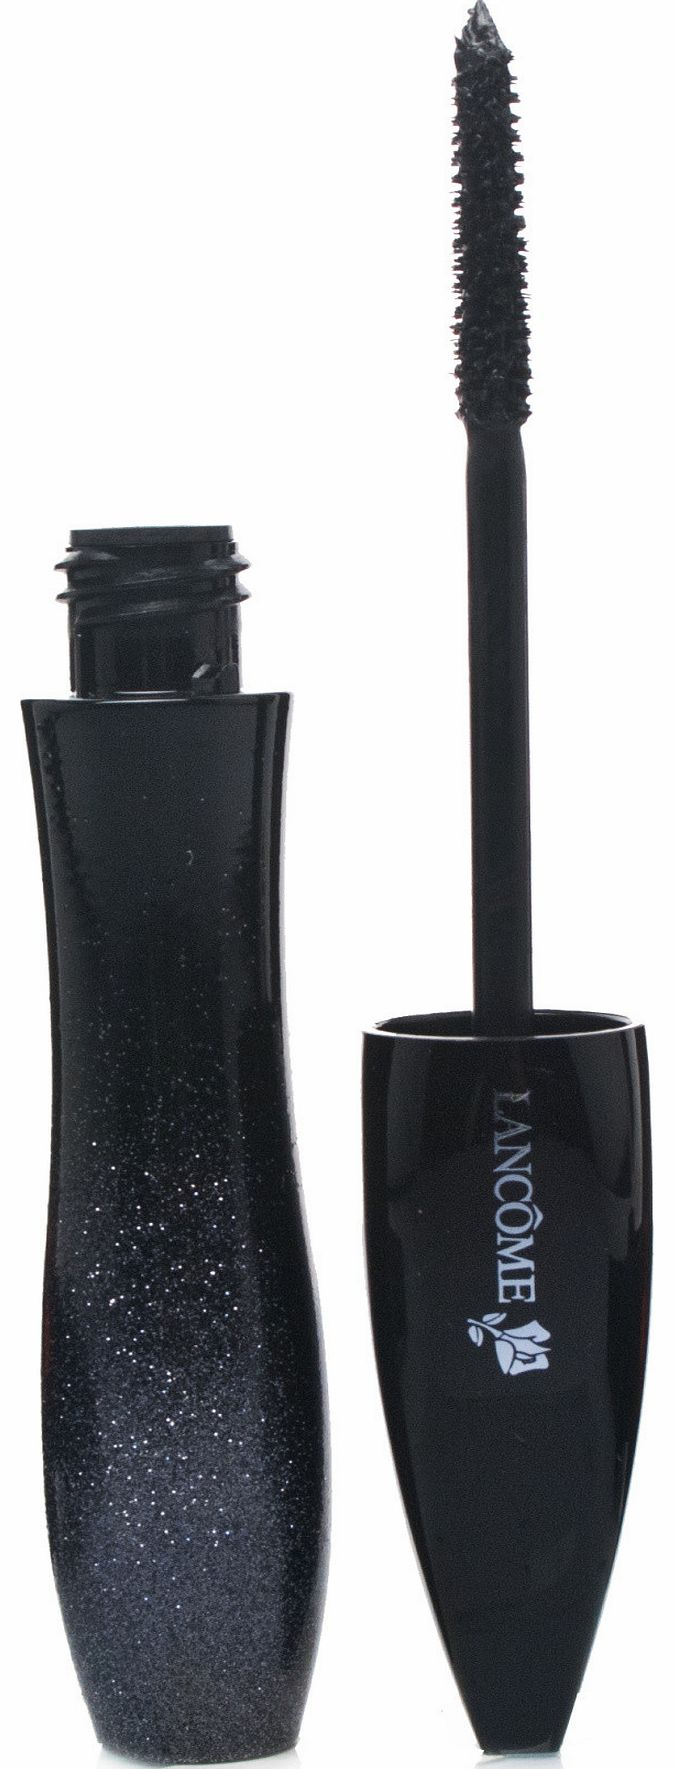 Hypnose Star Mascara Black